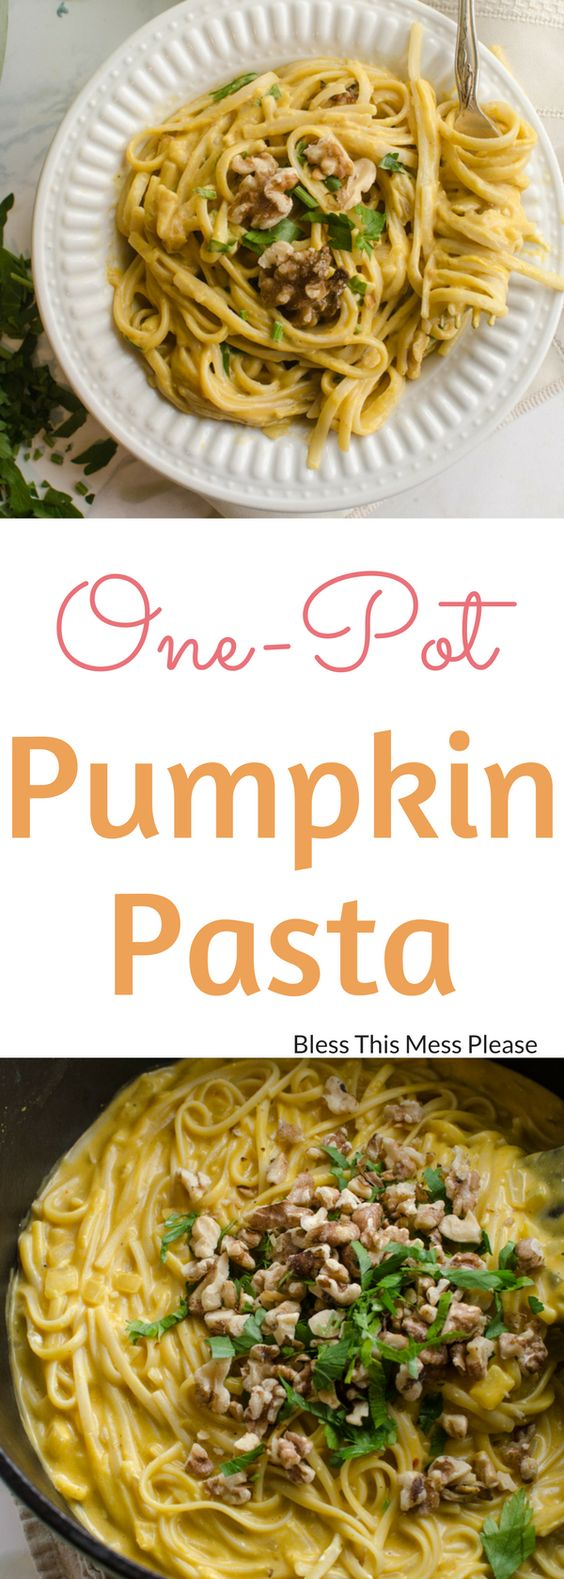 One Pot Creamy Pumpkin Pasta ~ One pot creamy pumpkin pasta with toasted walnuts and parsley is a simple meatless meal the whole family will love. Plus, it's done in 20 minutes!